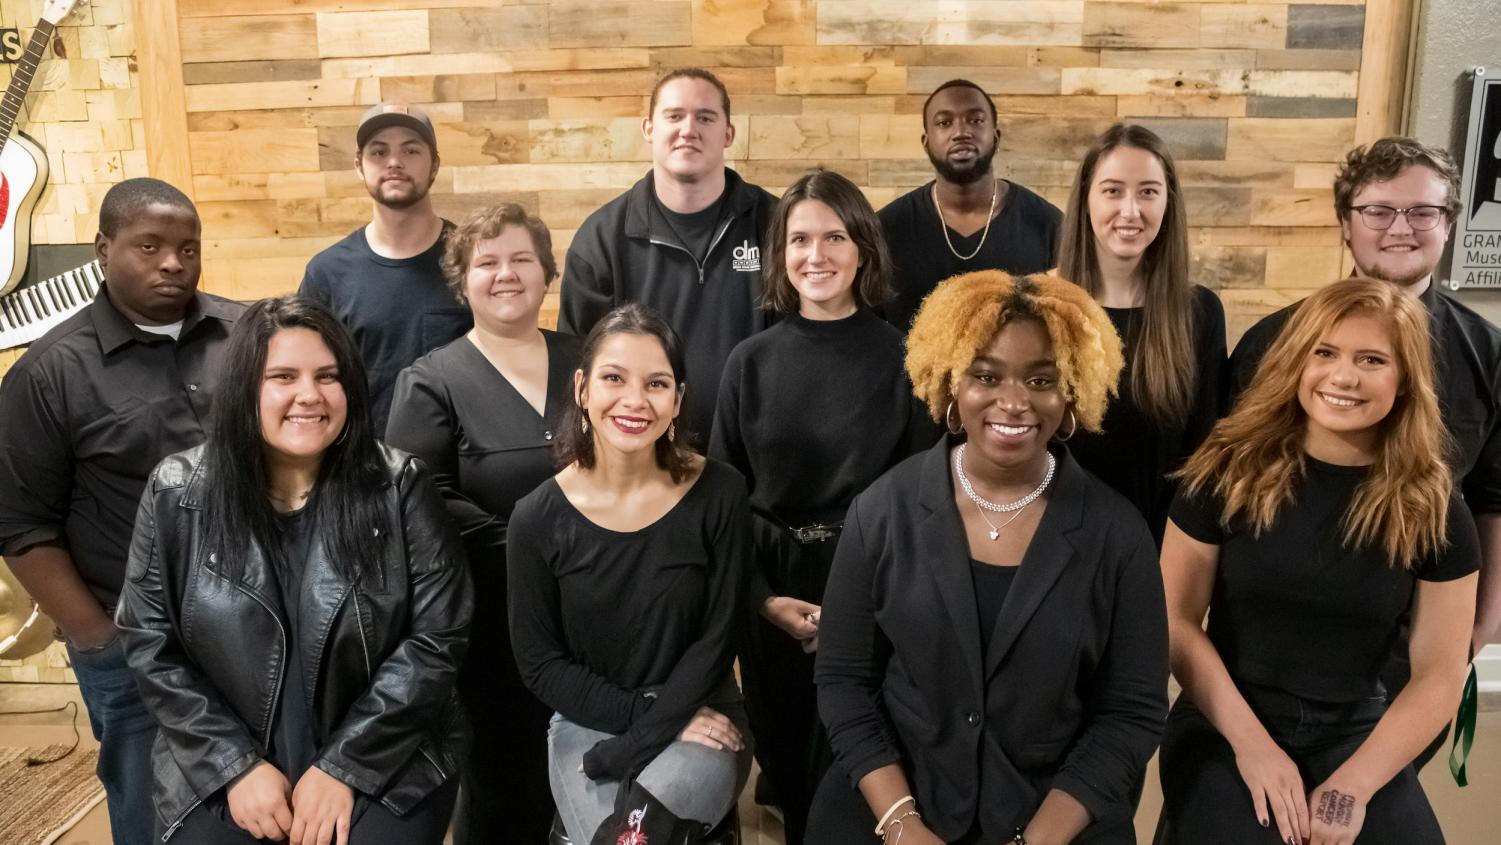 Picture of 2019 Delta Music Institute All-Stars' 12 band members. Hannah is the one on the far right front row. (Pic from Delta State website)